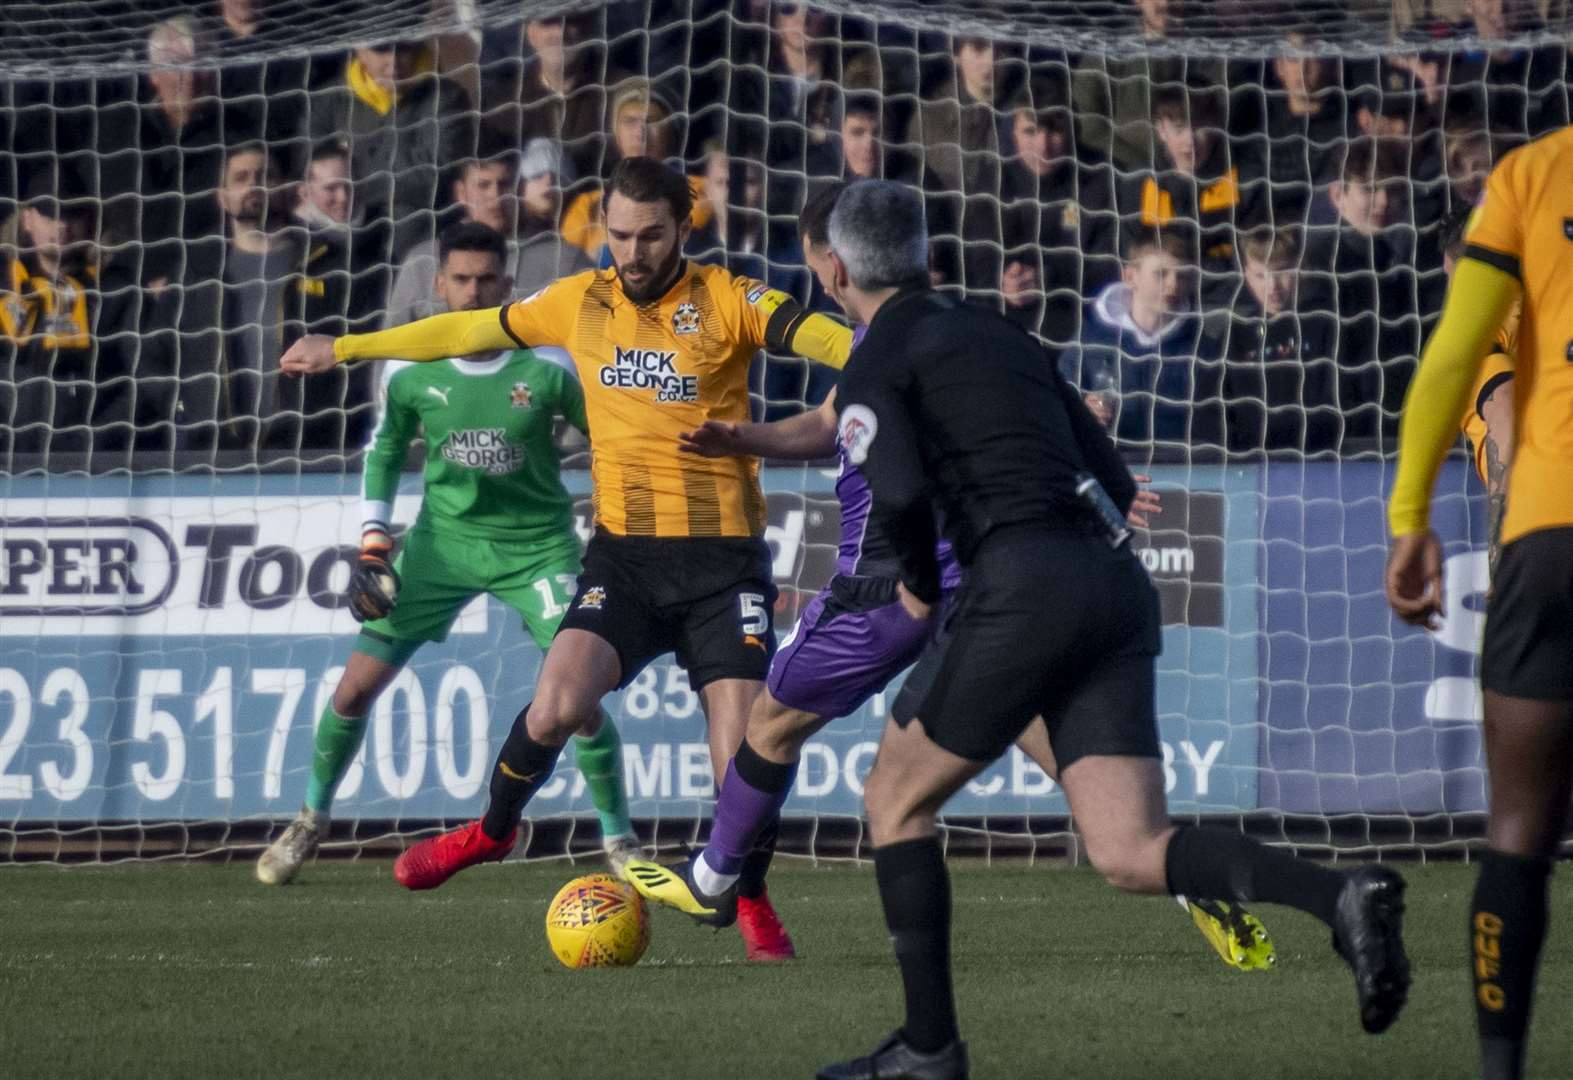 Illness bug causes selection poser for Cambridge United ahead of clash with Exeter City